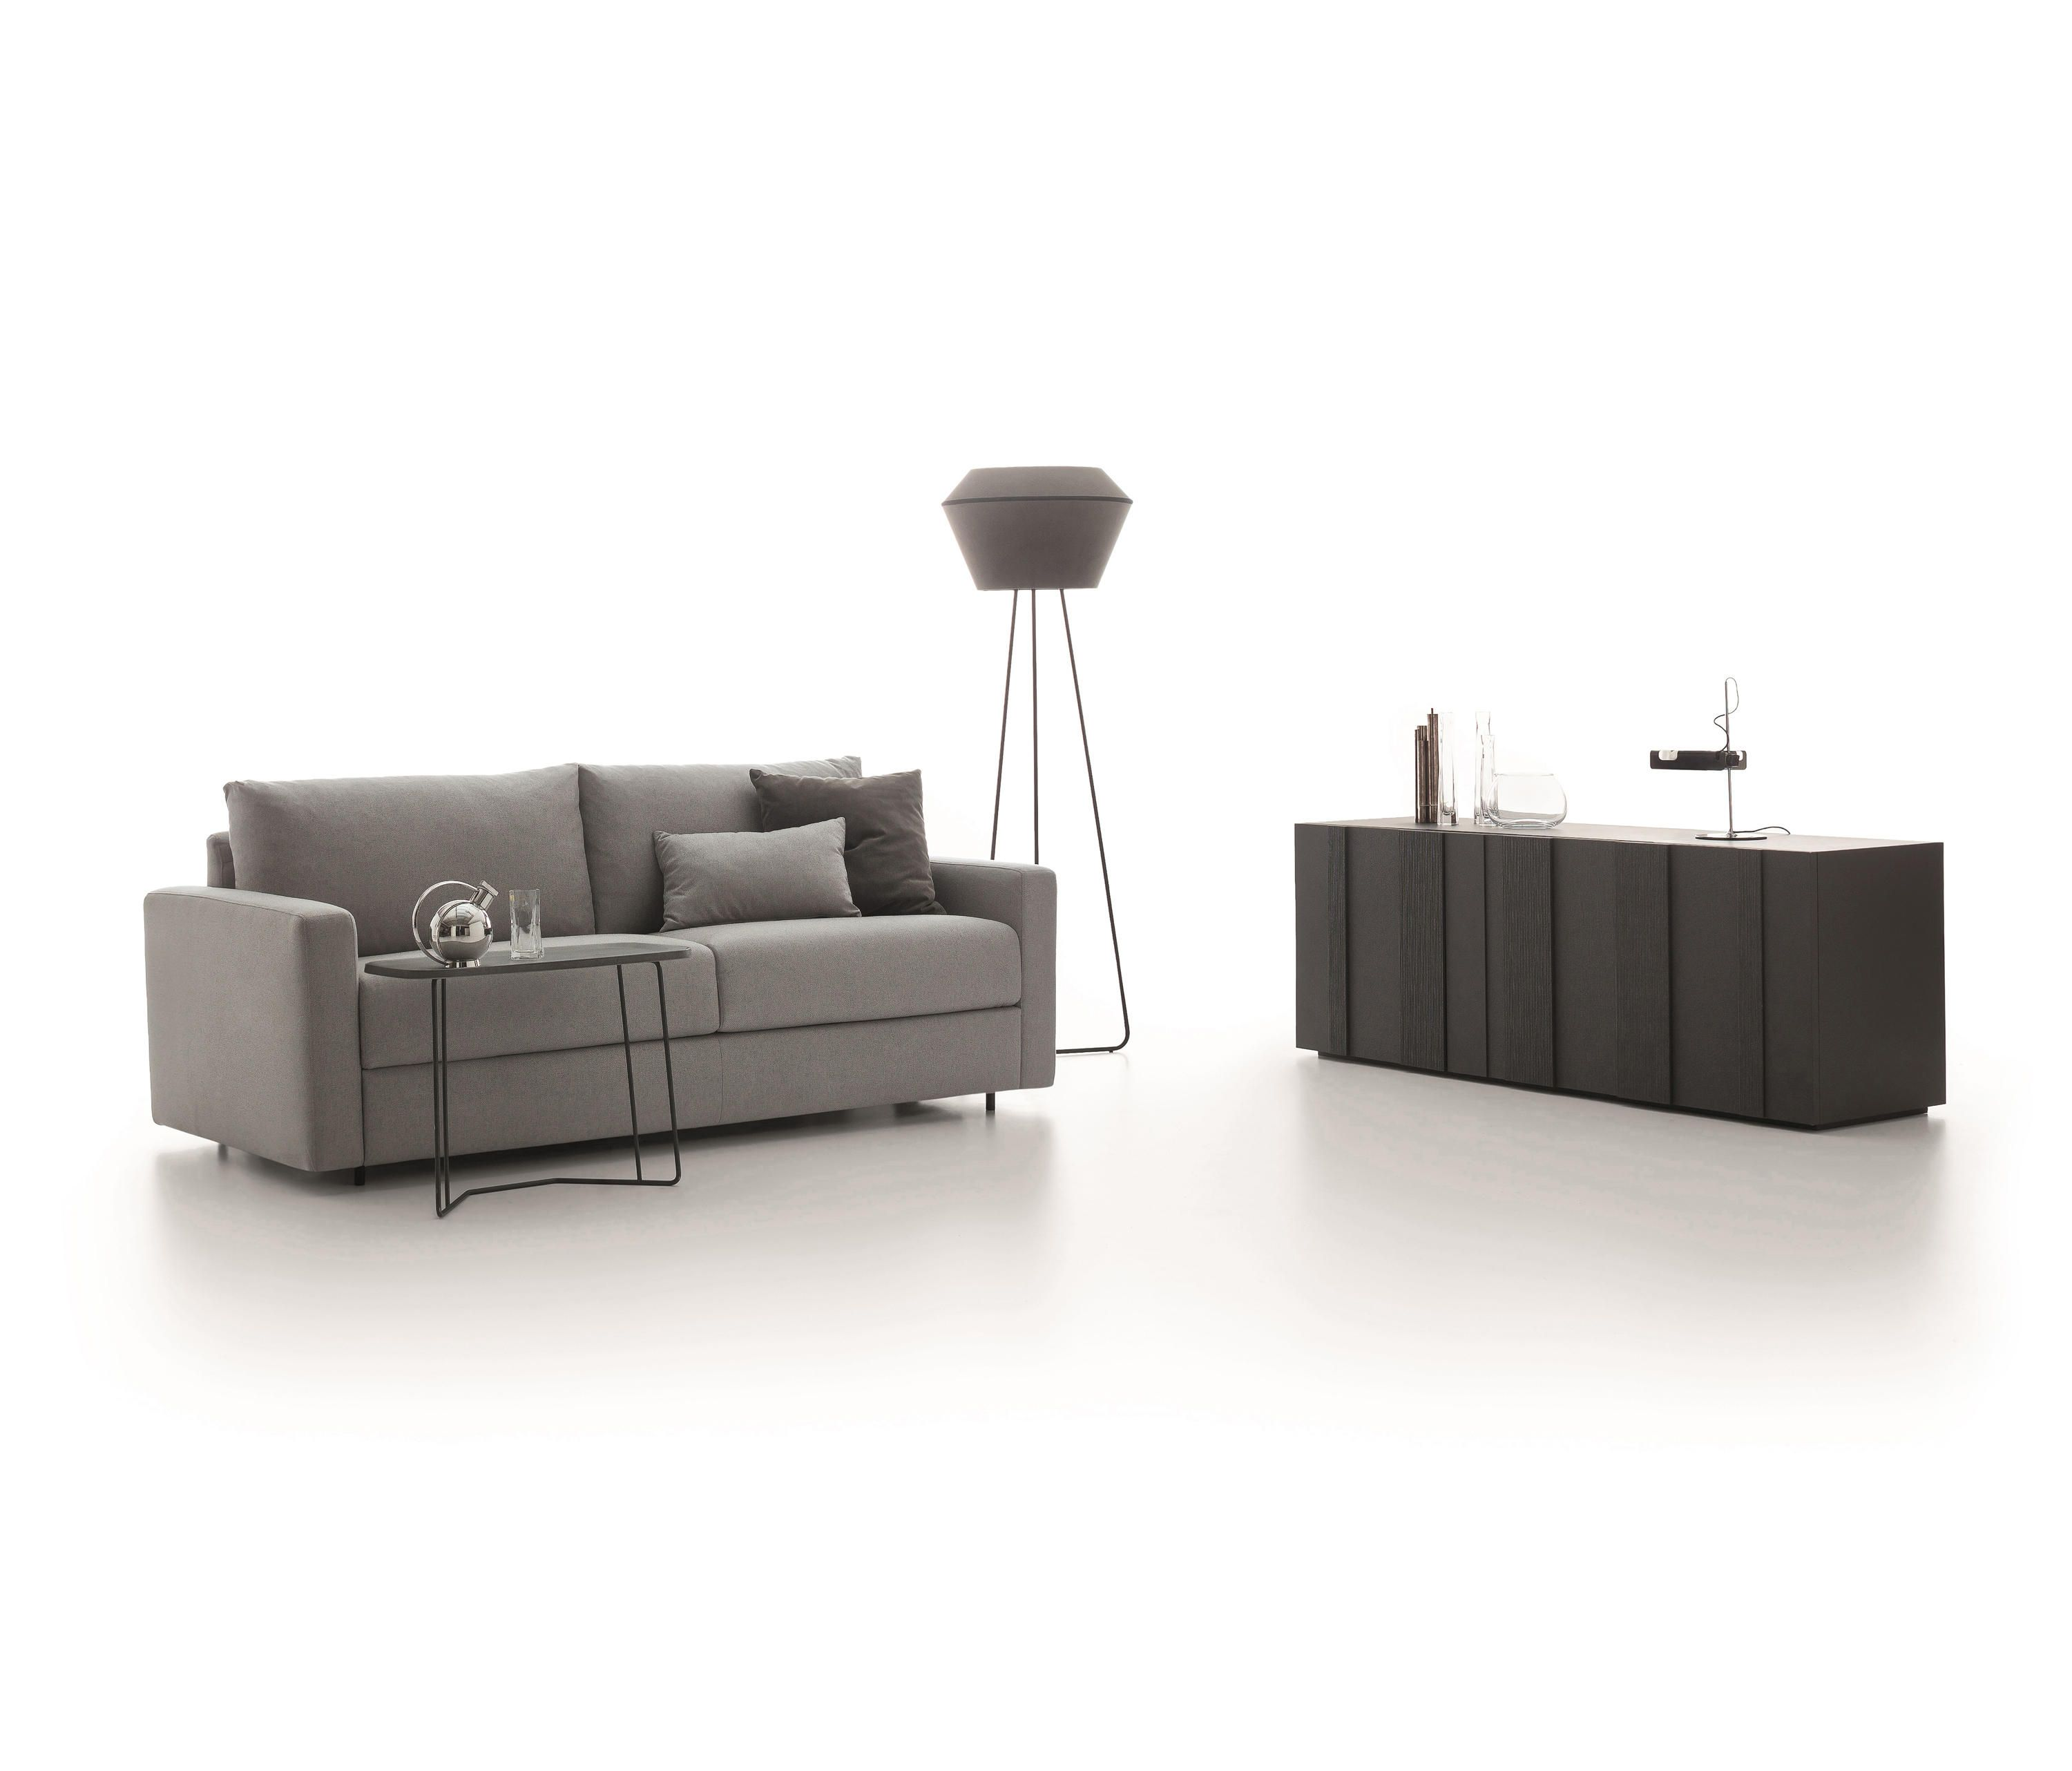 Freedom Is An Everyday Sofa Bed With Sy Proportions That Become Impressive